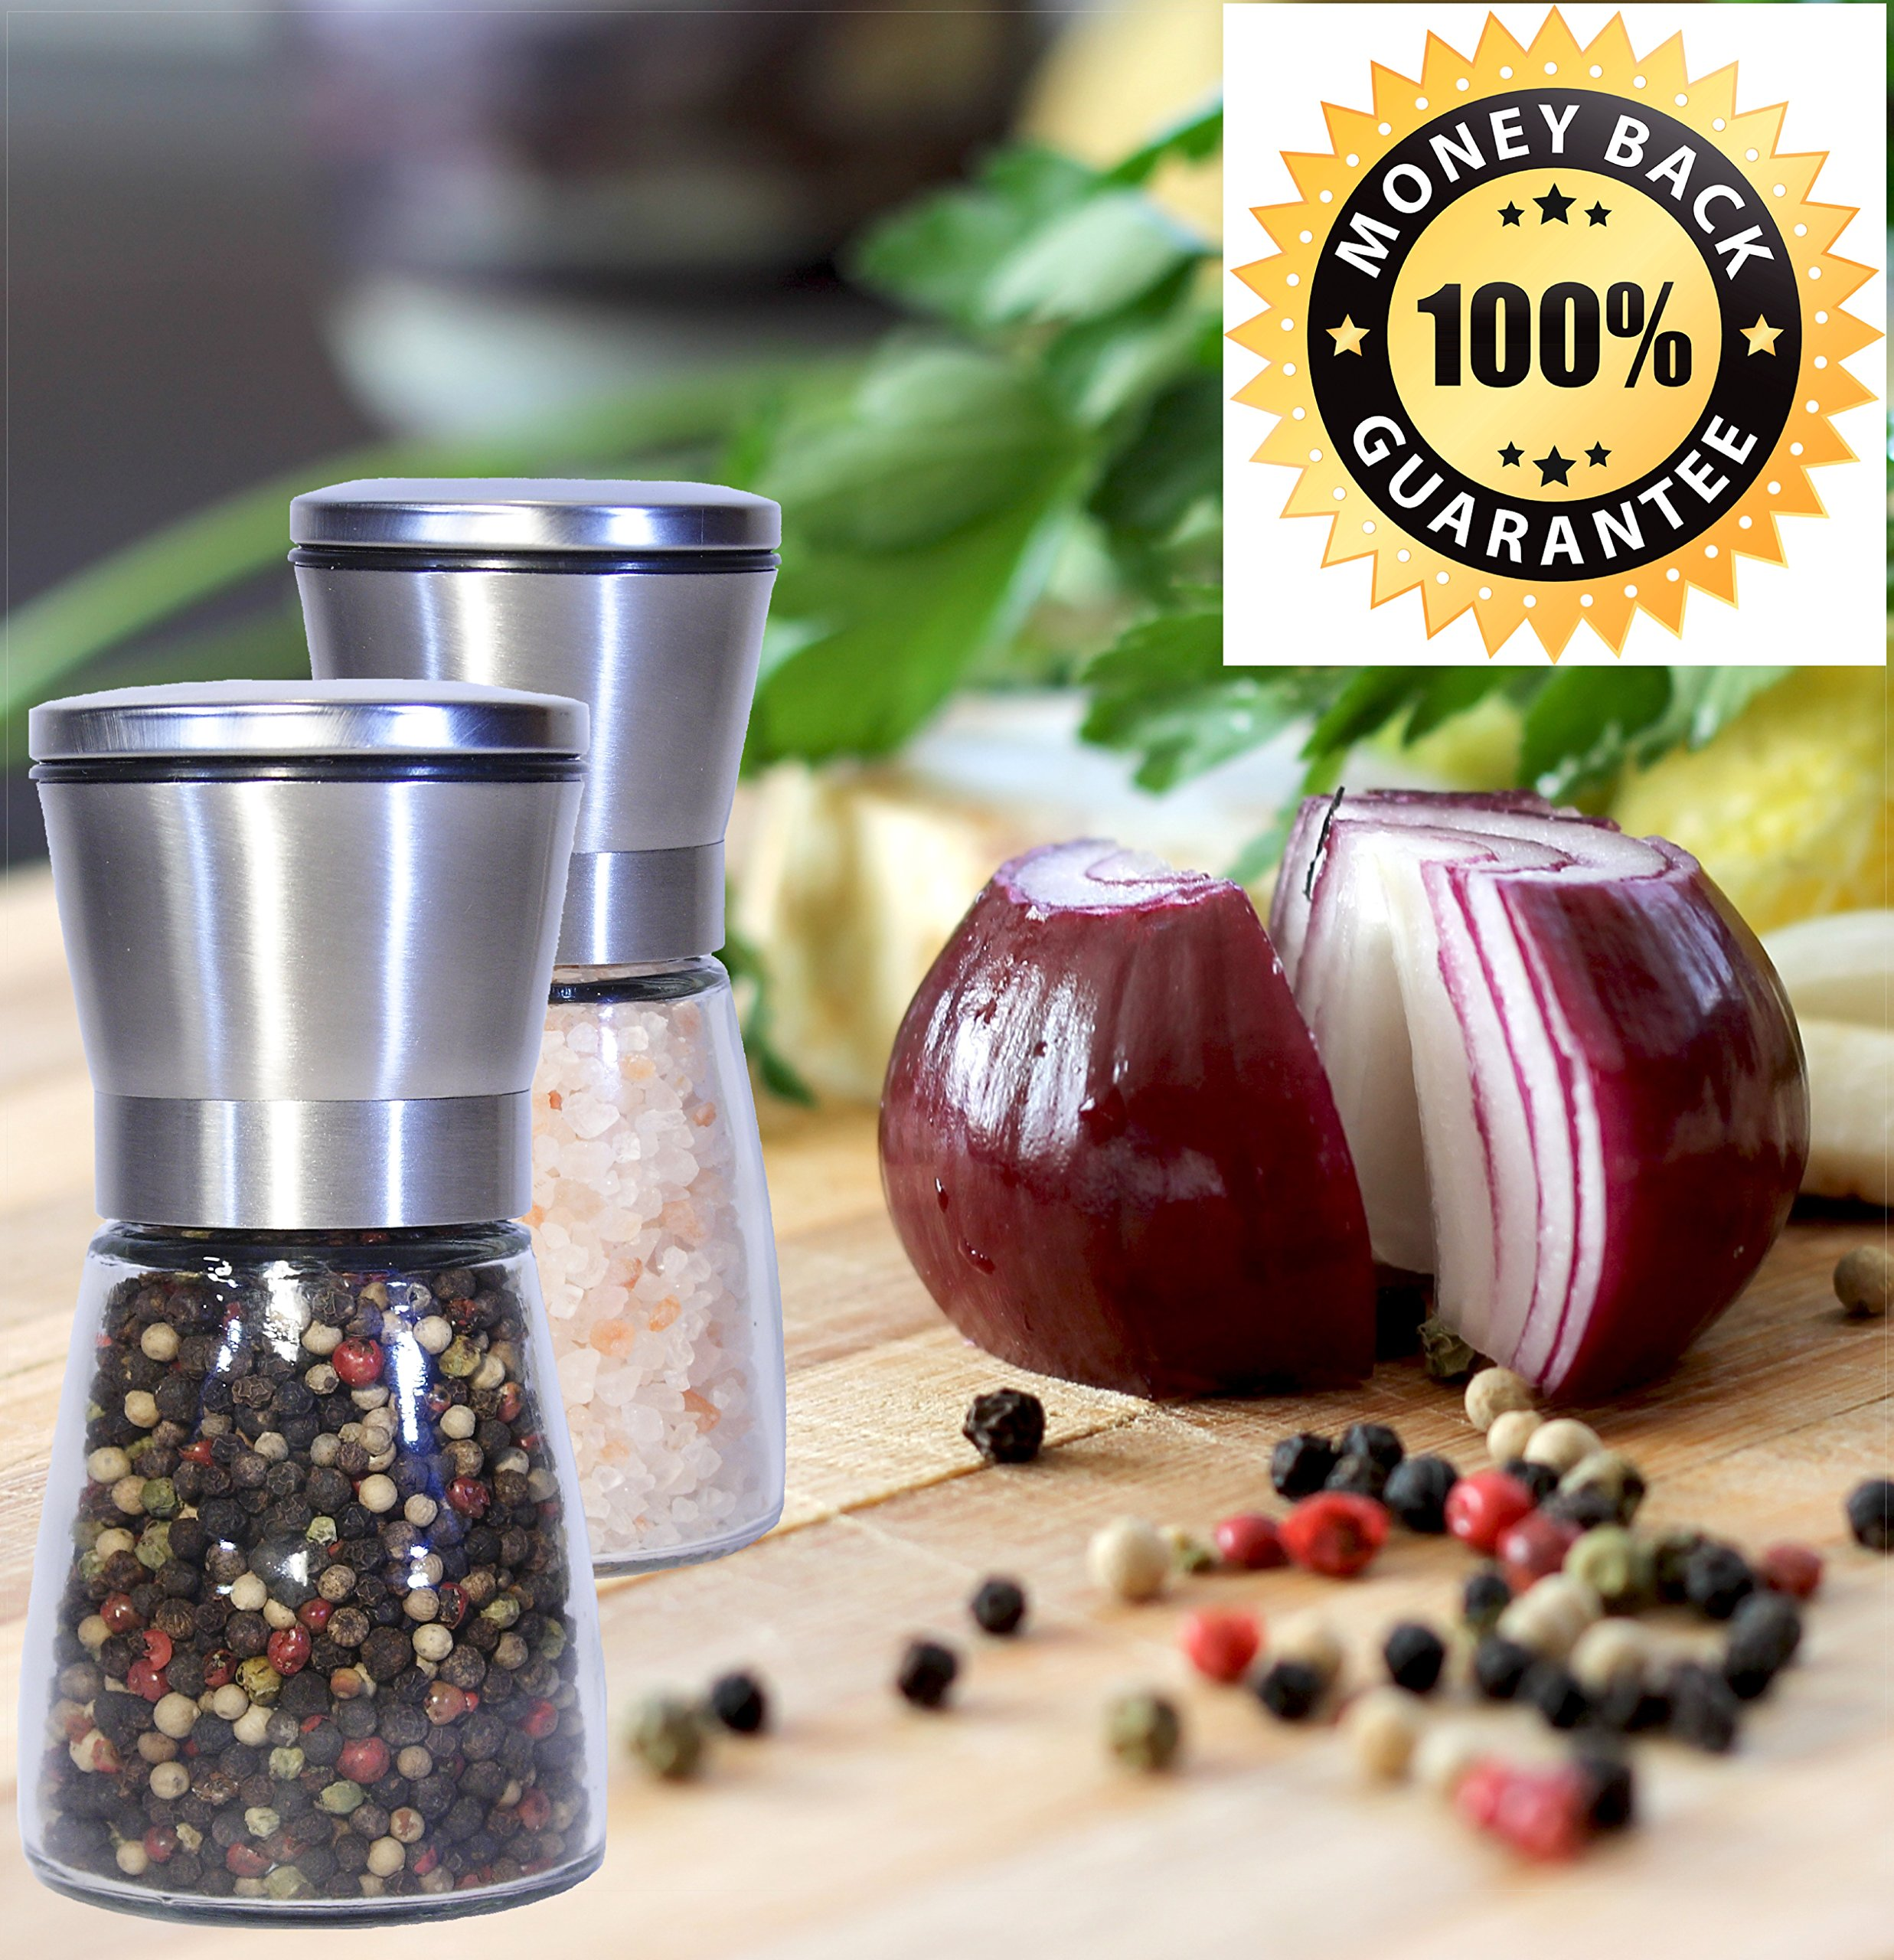 Best Salt and Pepper Grinder, Stainless Steel - Adjustable Coarseness Mill - Kitchen To Table Use Grinder - Easy to Refill Shaker - Elegant Spice Mill (Large set of 2 grinders) by Best cooks friends (Image #2)